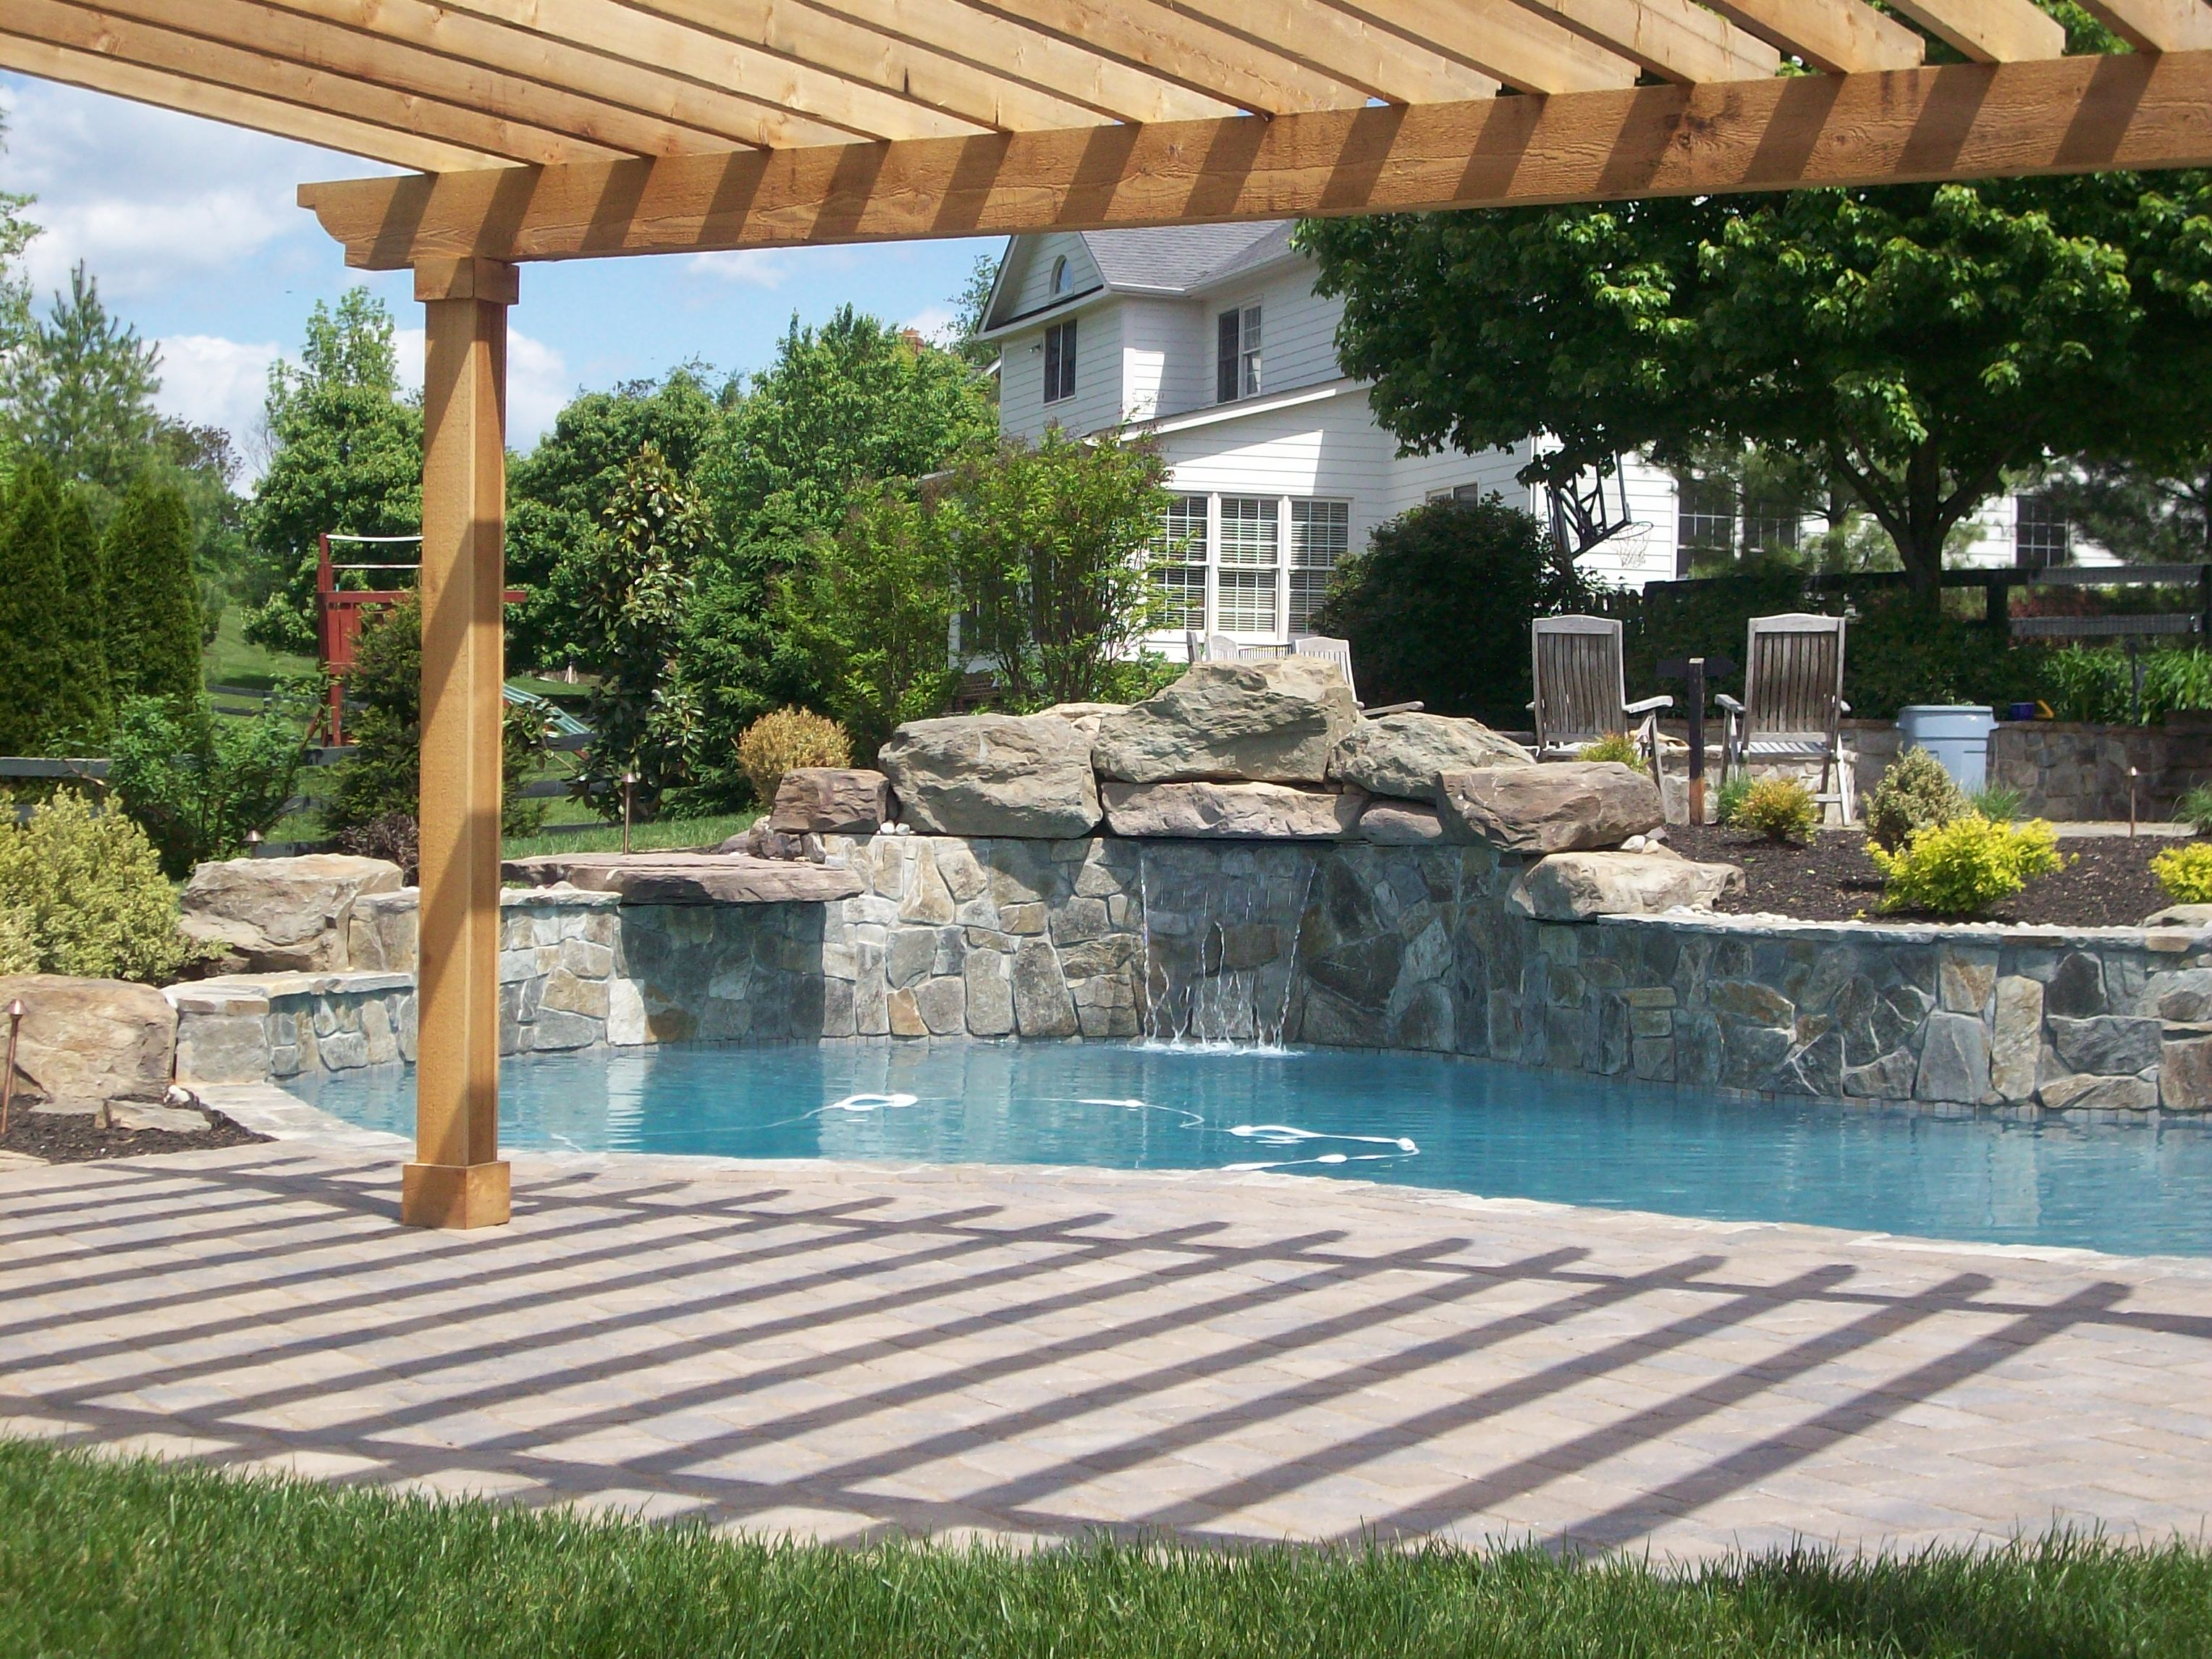 Boulders Around Pool A Pool As Part Of Your Back Yard Oasis  Main Street Landscape